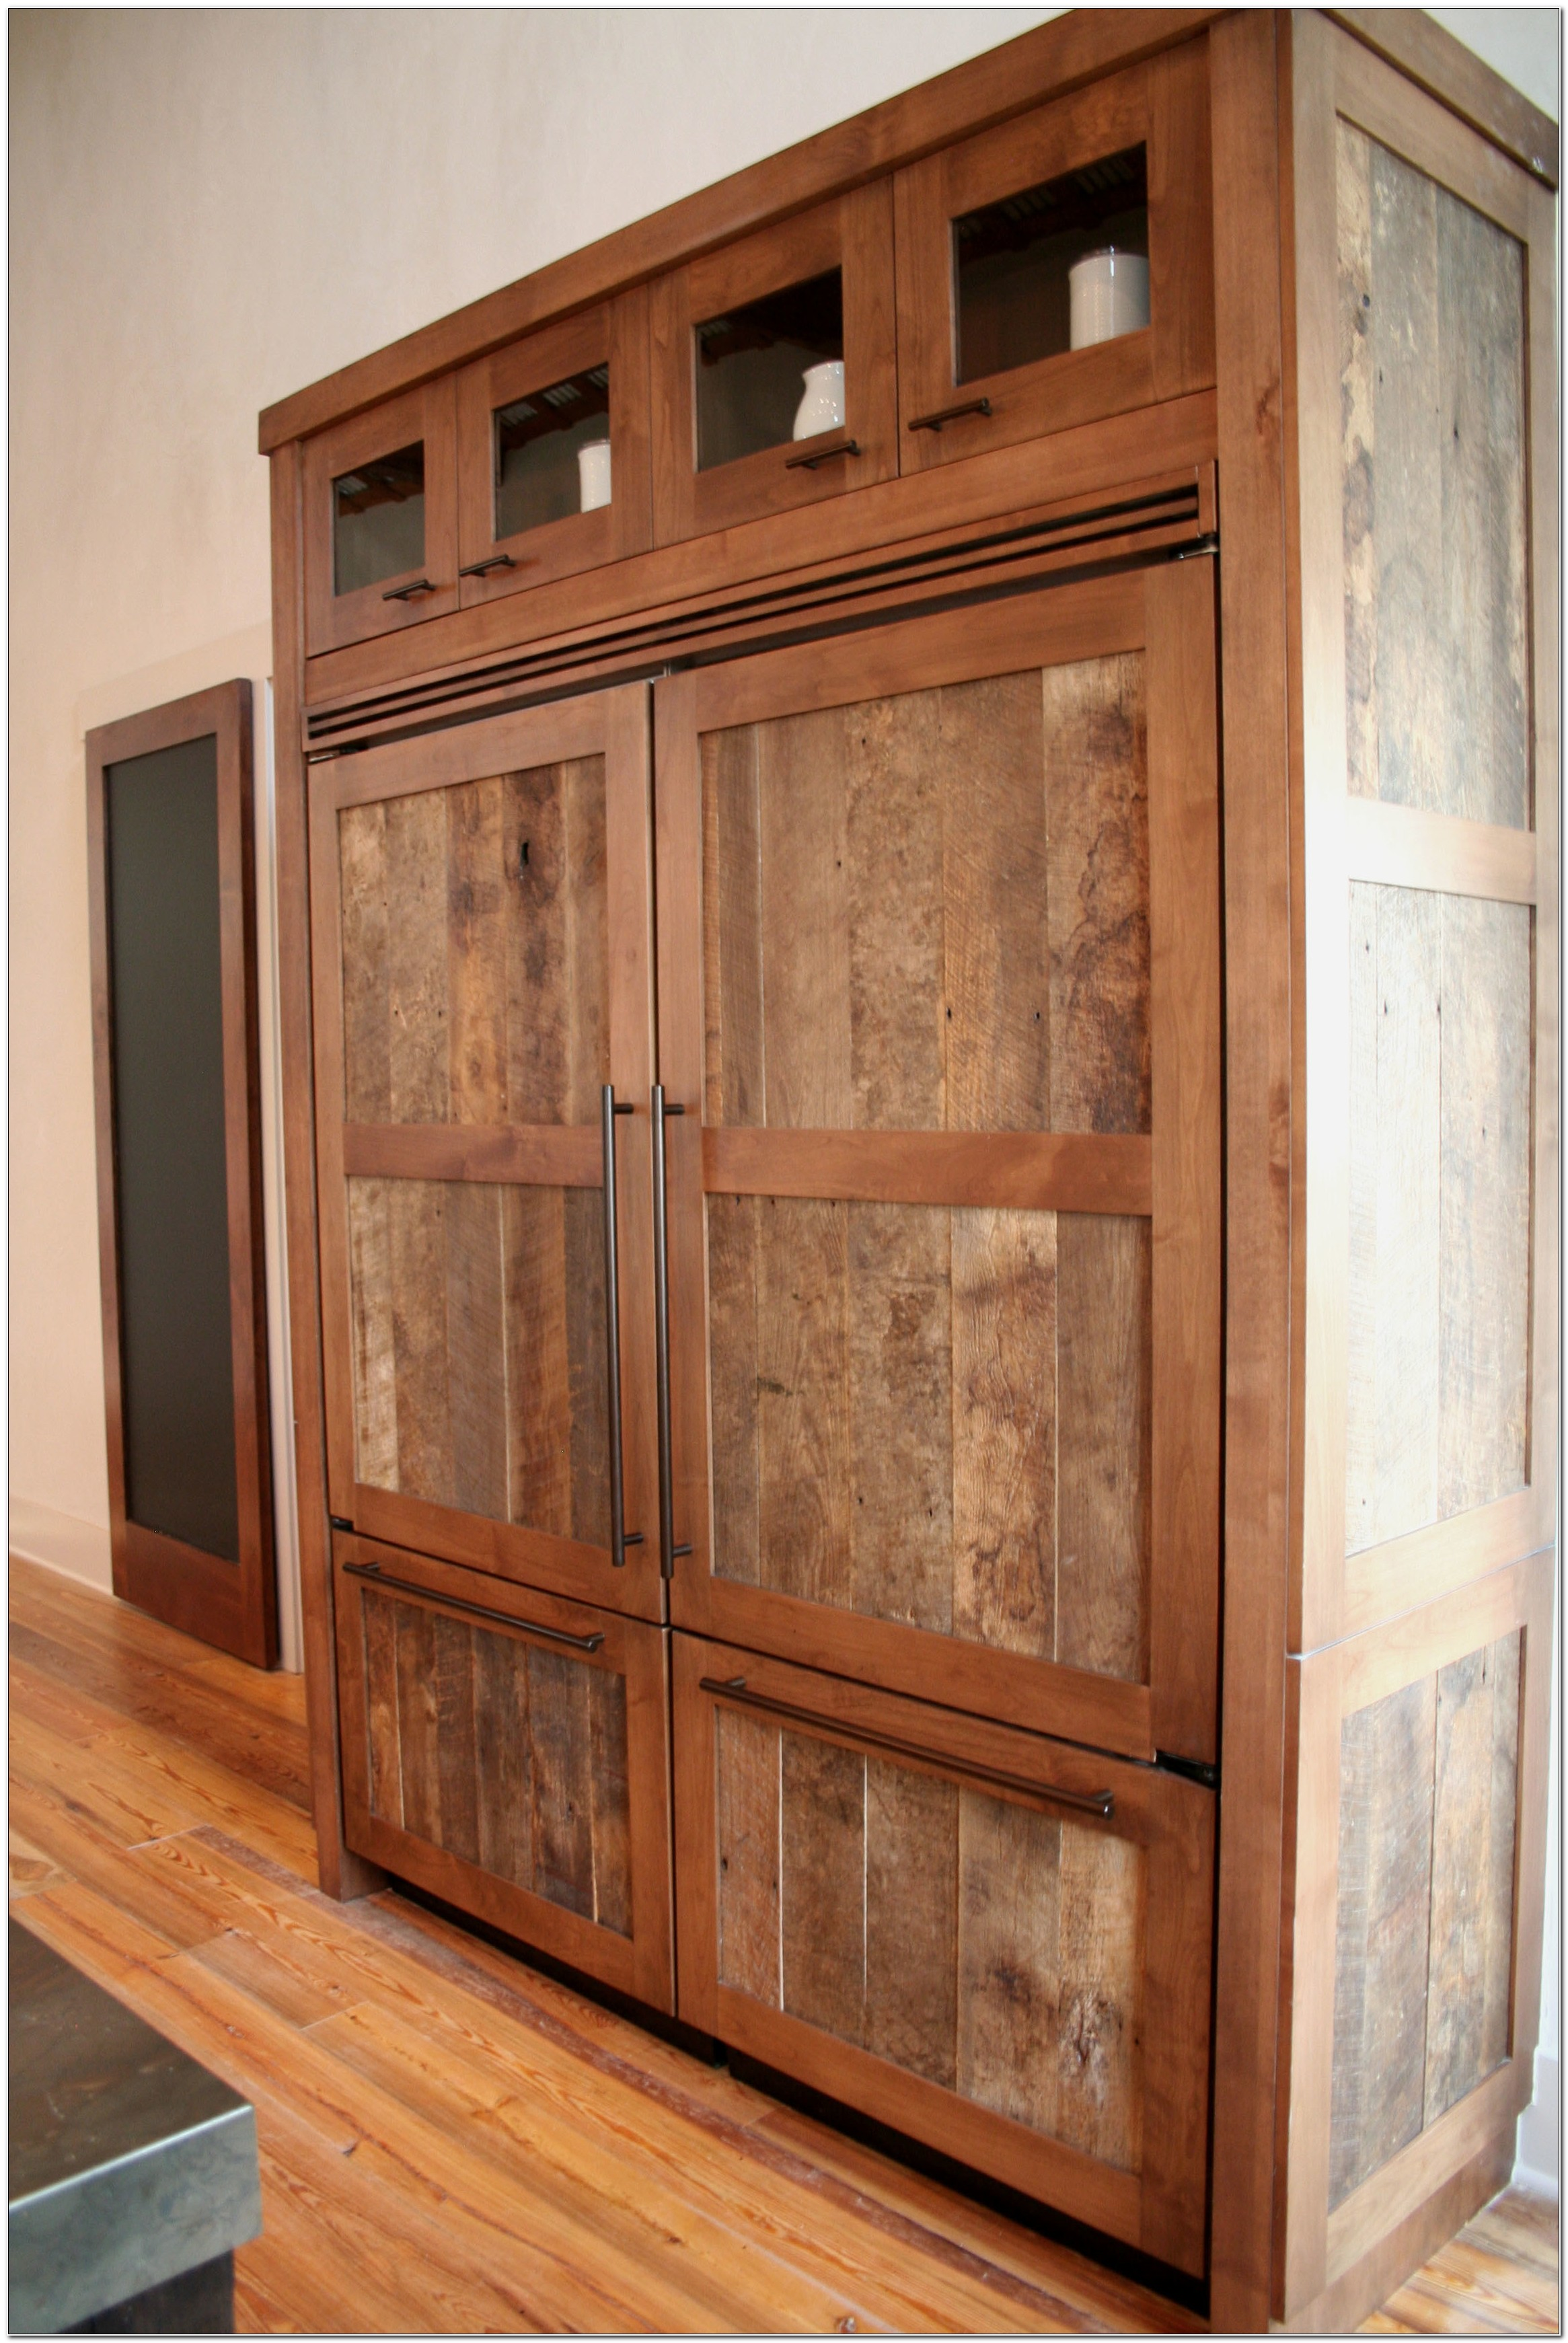 Reclaimed Wood Cabinet Doors Uk